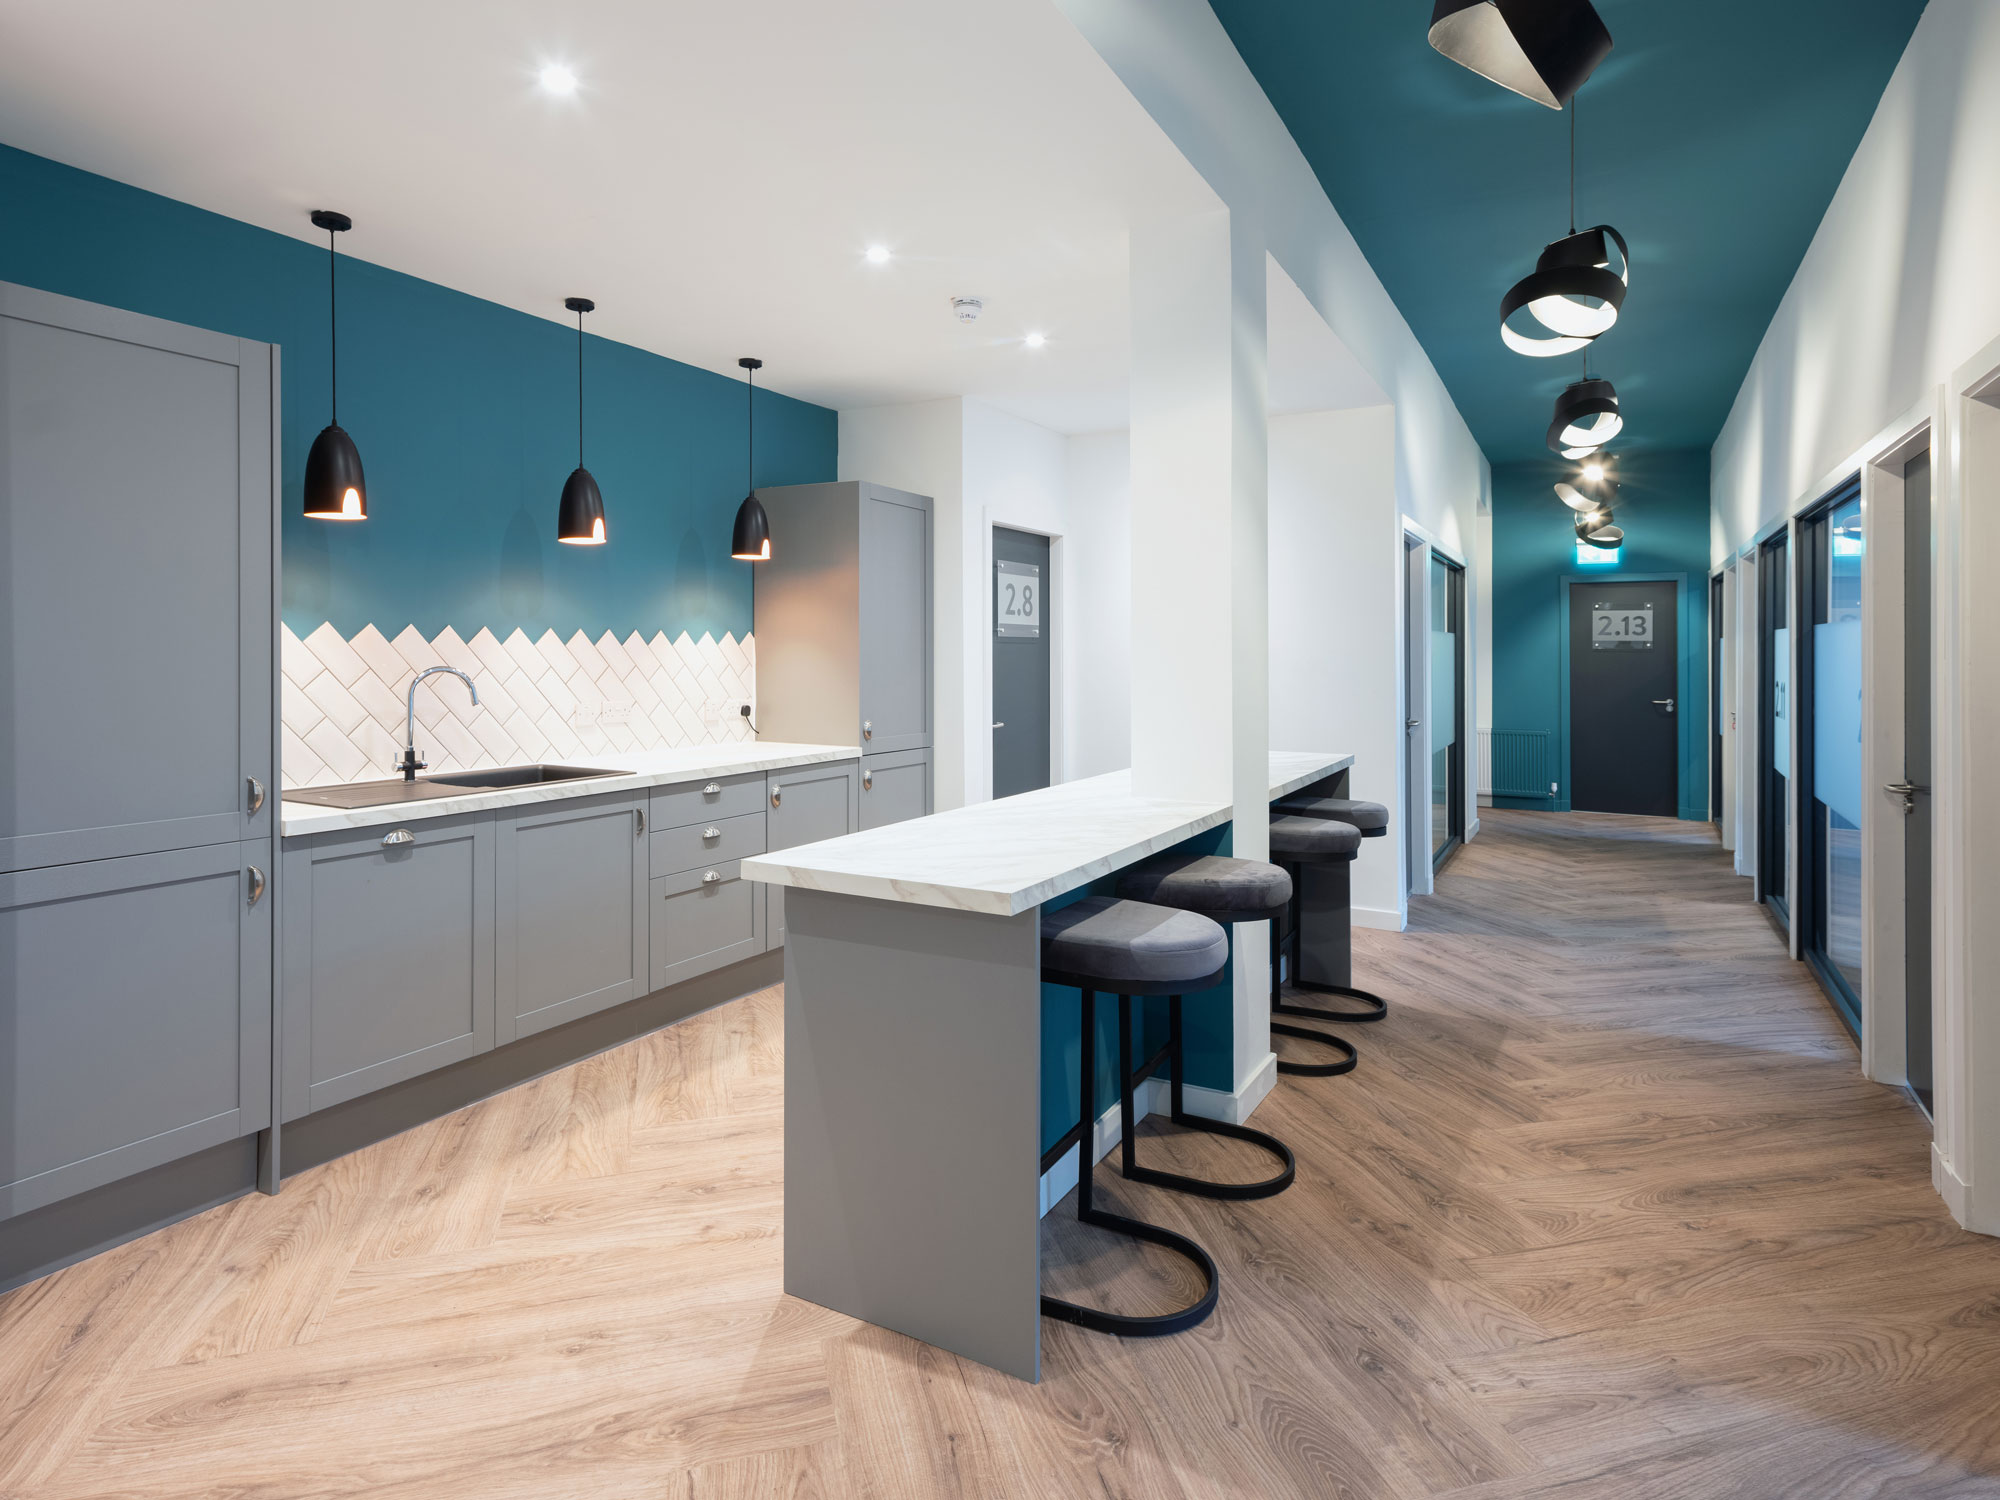 Office space to rent Glasgow with kitchen facilities